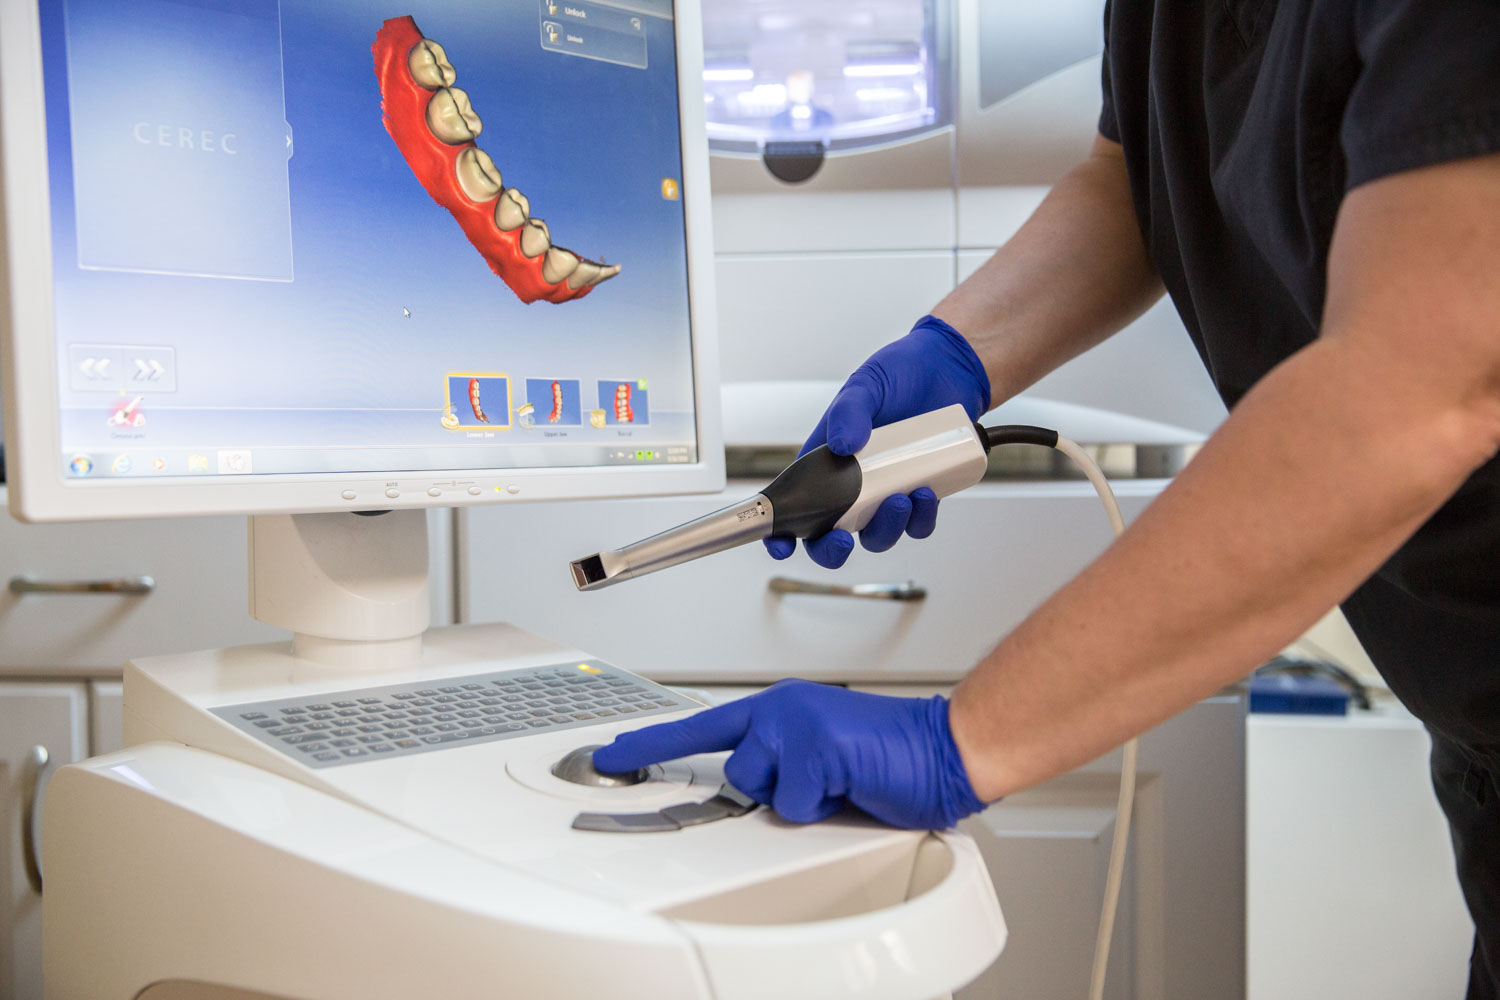 CEREC - Dental Technology Image